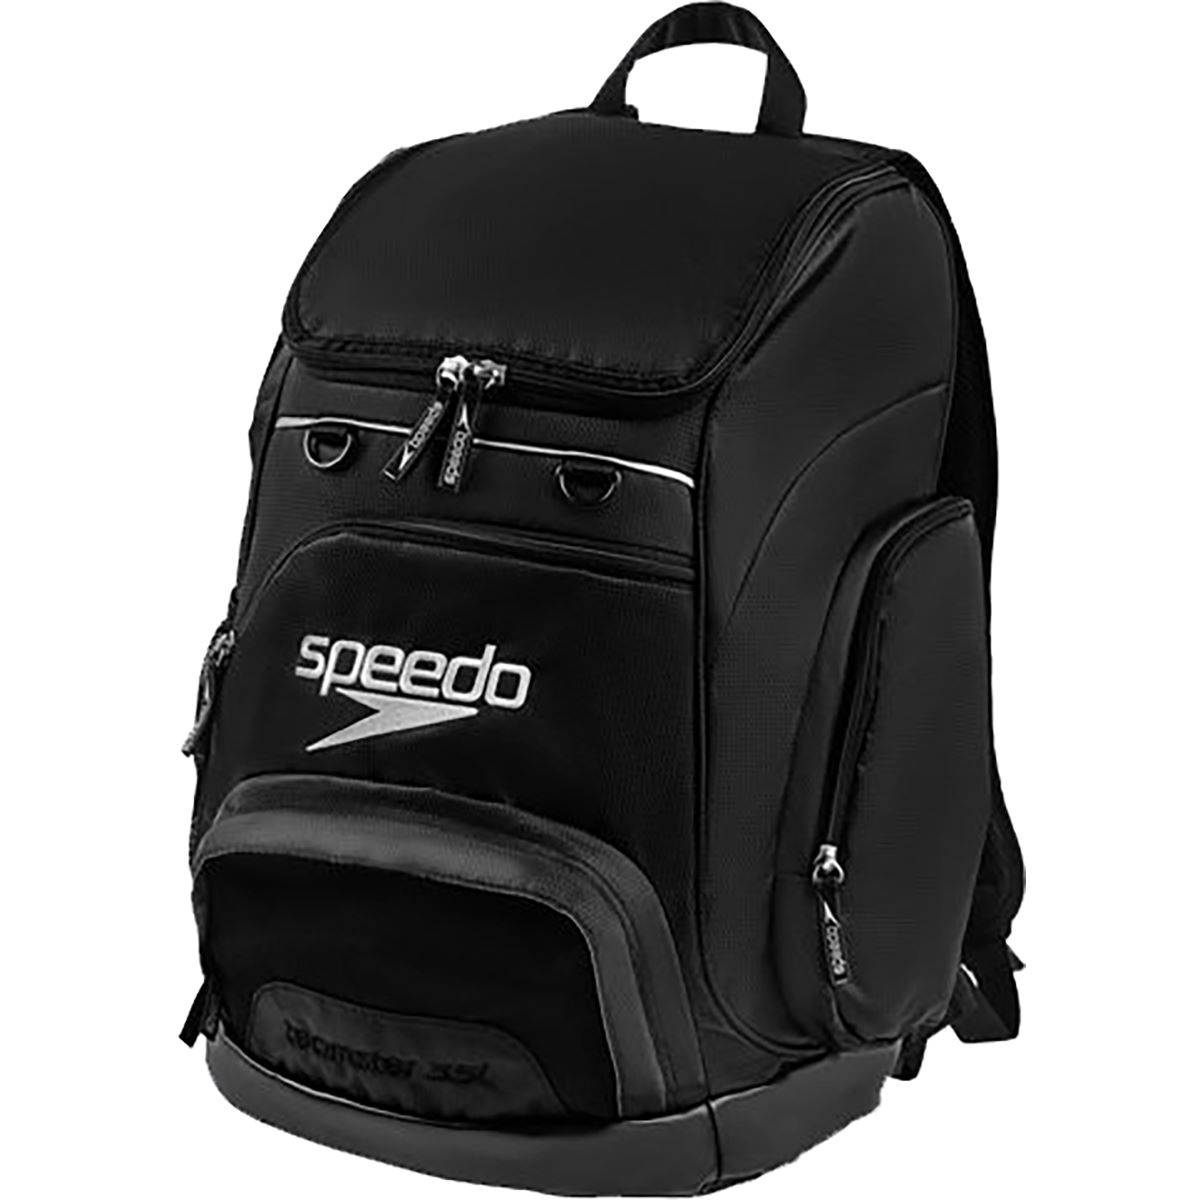 Sac à dos Speedo Teamster (35 litres) - One Size Noir